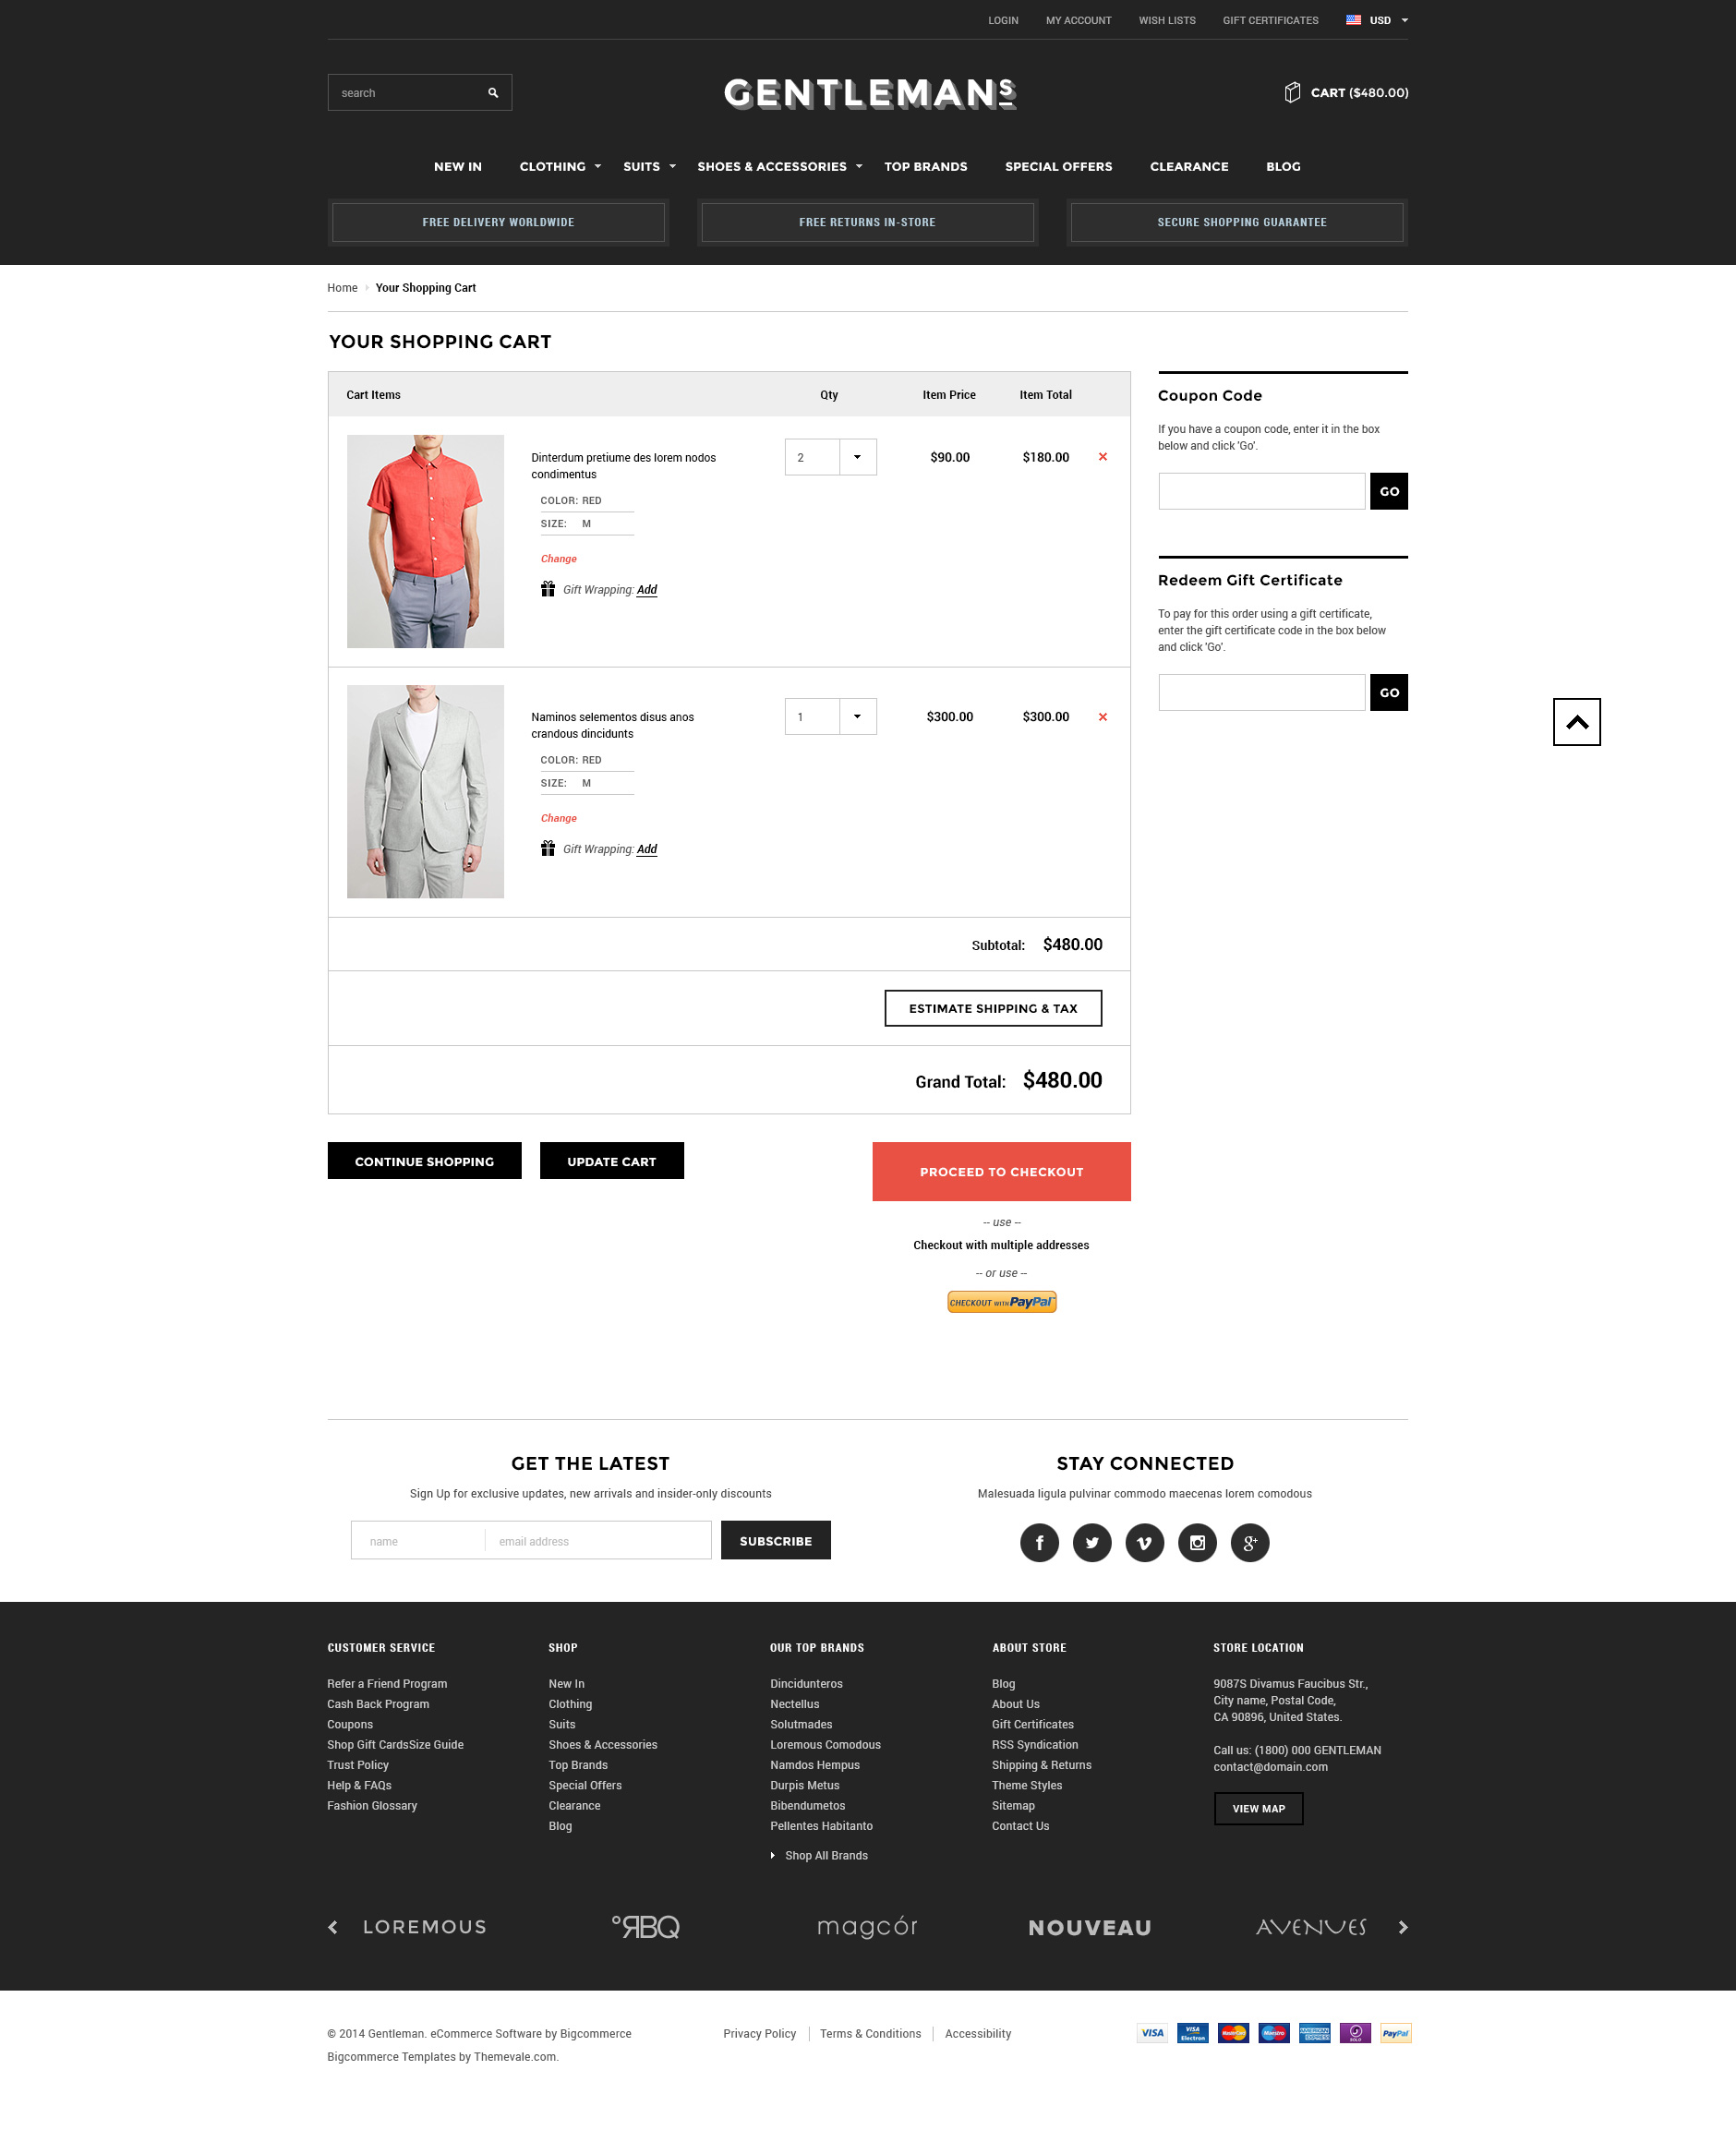 Gentleman Premium Responsive Bigcommerce Template ThemeValecom - Responsive shopping cart template